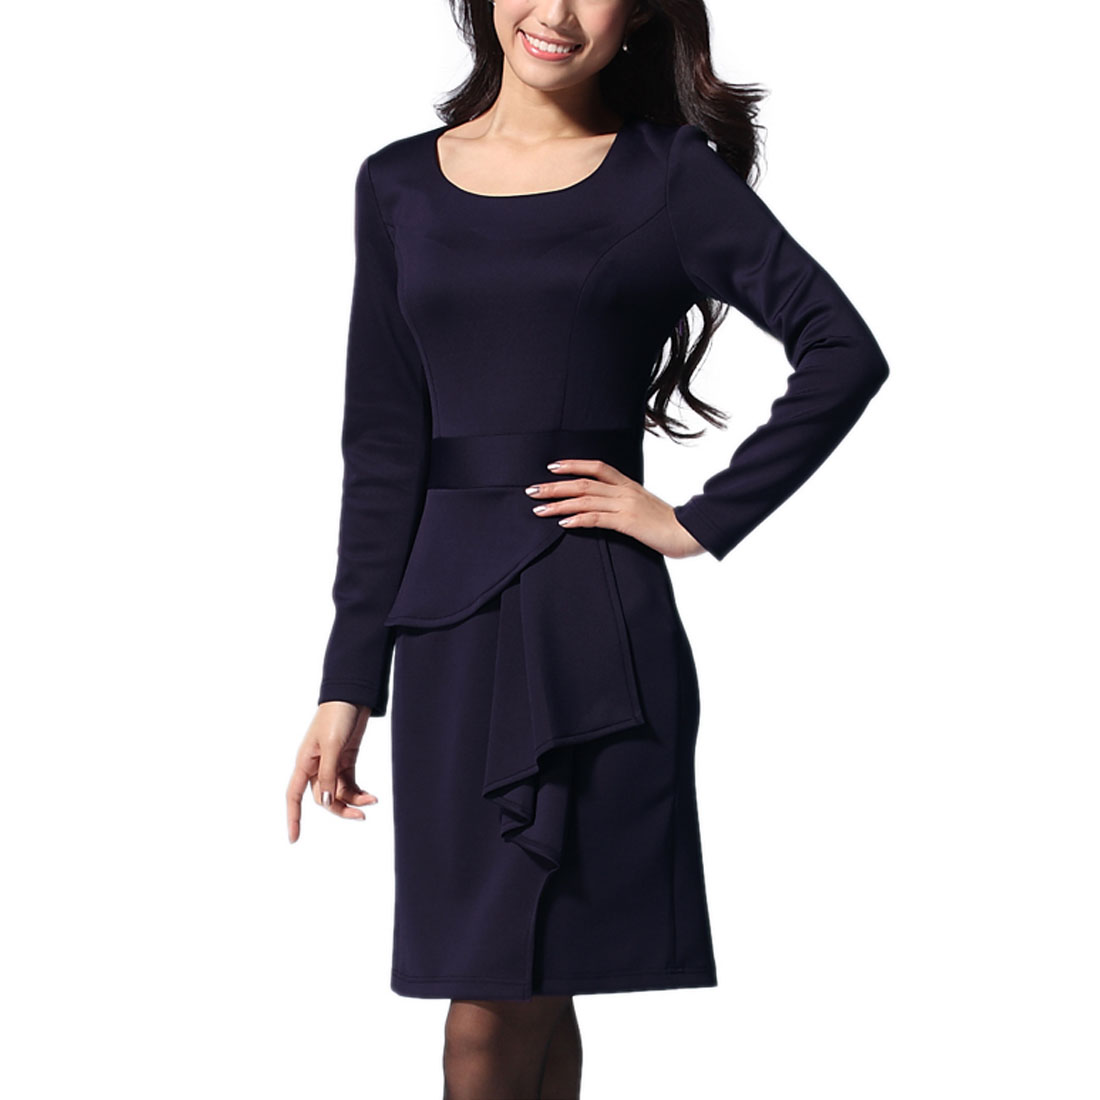 Women Long Sleeves Round Neck Ruffle Decor Dress Purple S